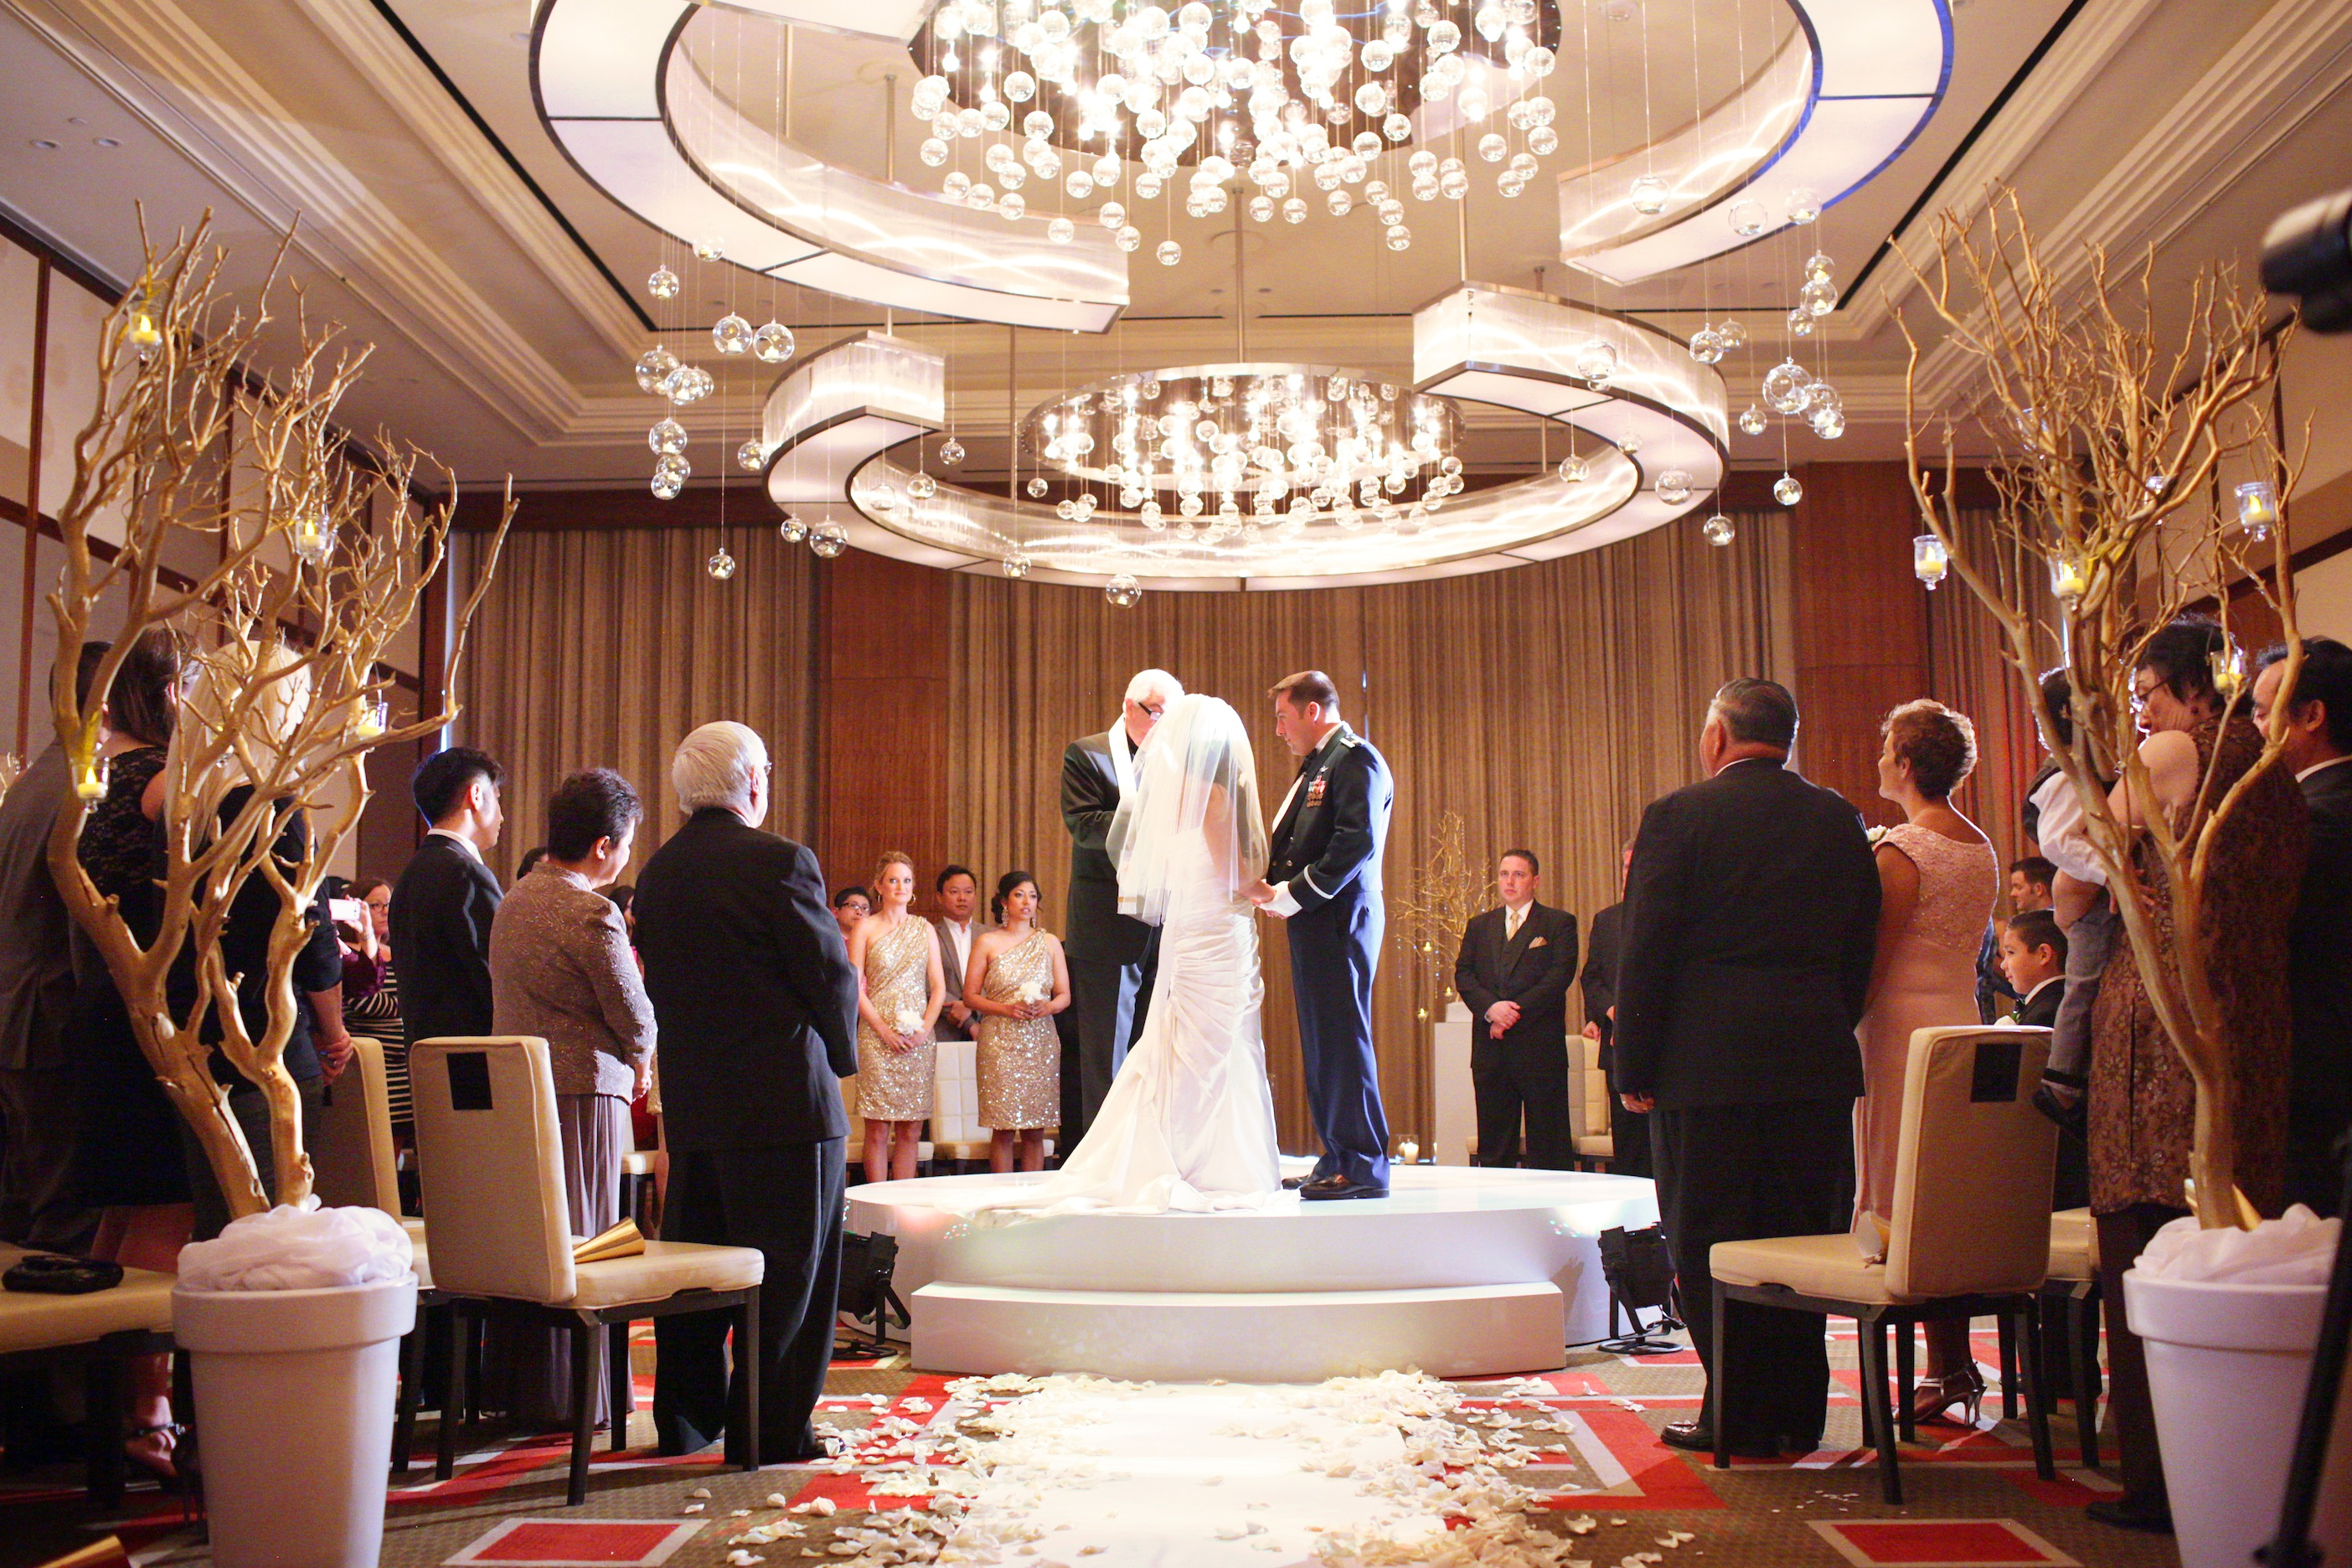 las vegas mandarin oriental wedding melissa eddie vegas wedding chapels circular wedding ceremony